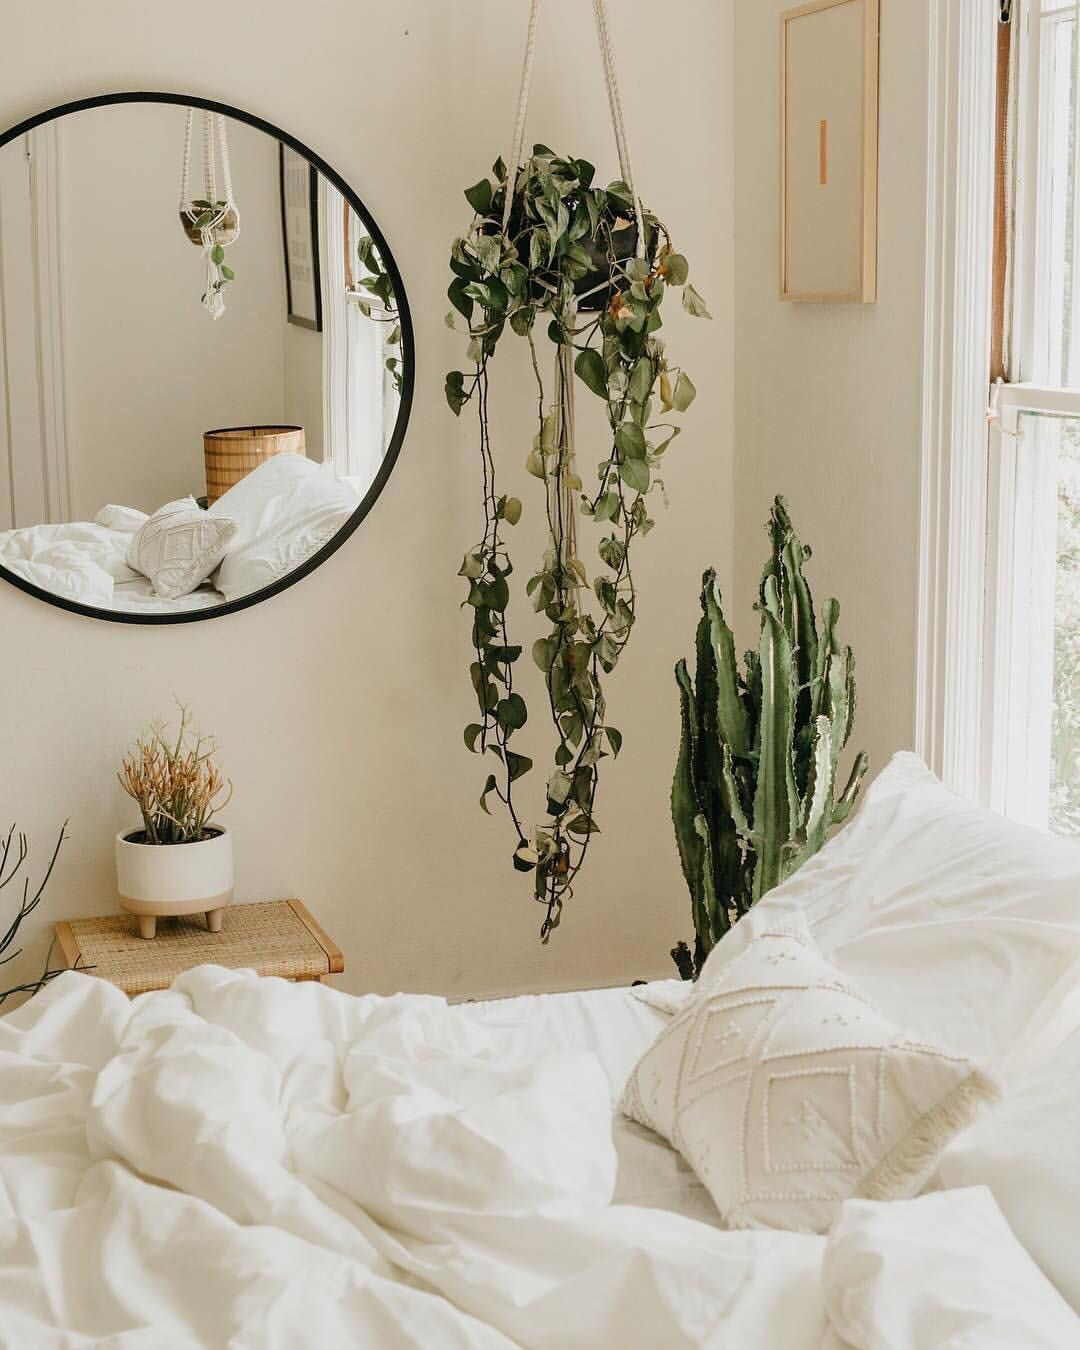 Perfect #UOHome situation brought to you by new bedding, natural